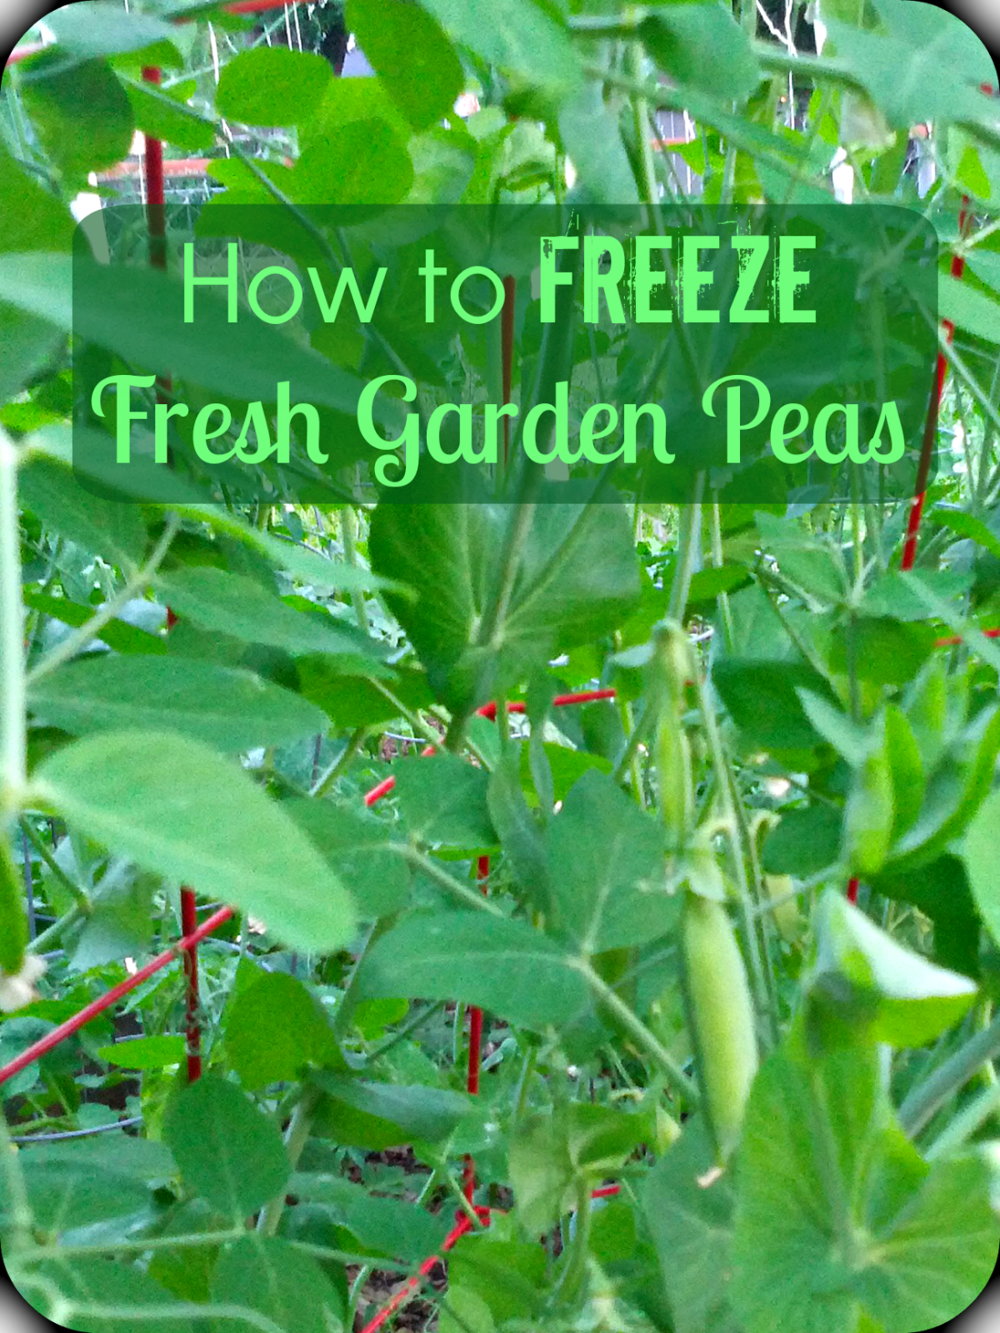 The rain let up just long enough this week for me to rush to the garden and pick all the shell peas. While snap peas have edible pods, shell peas take ...